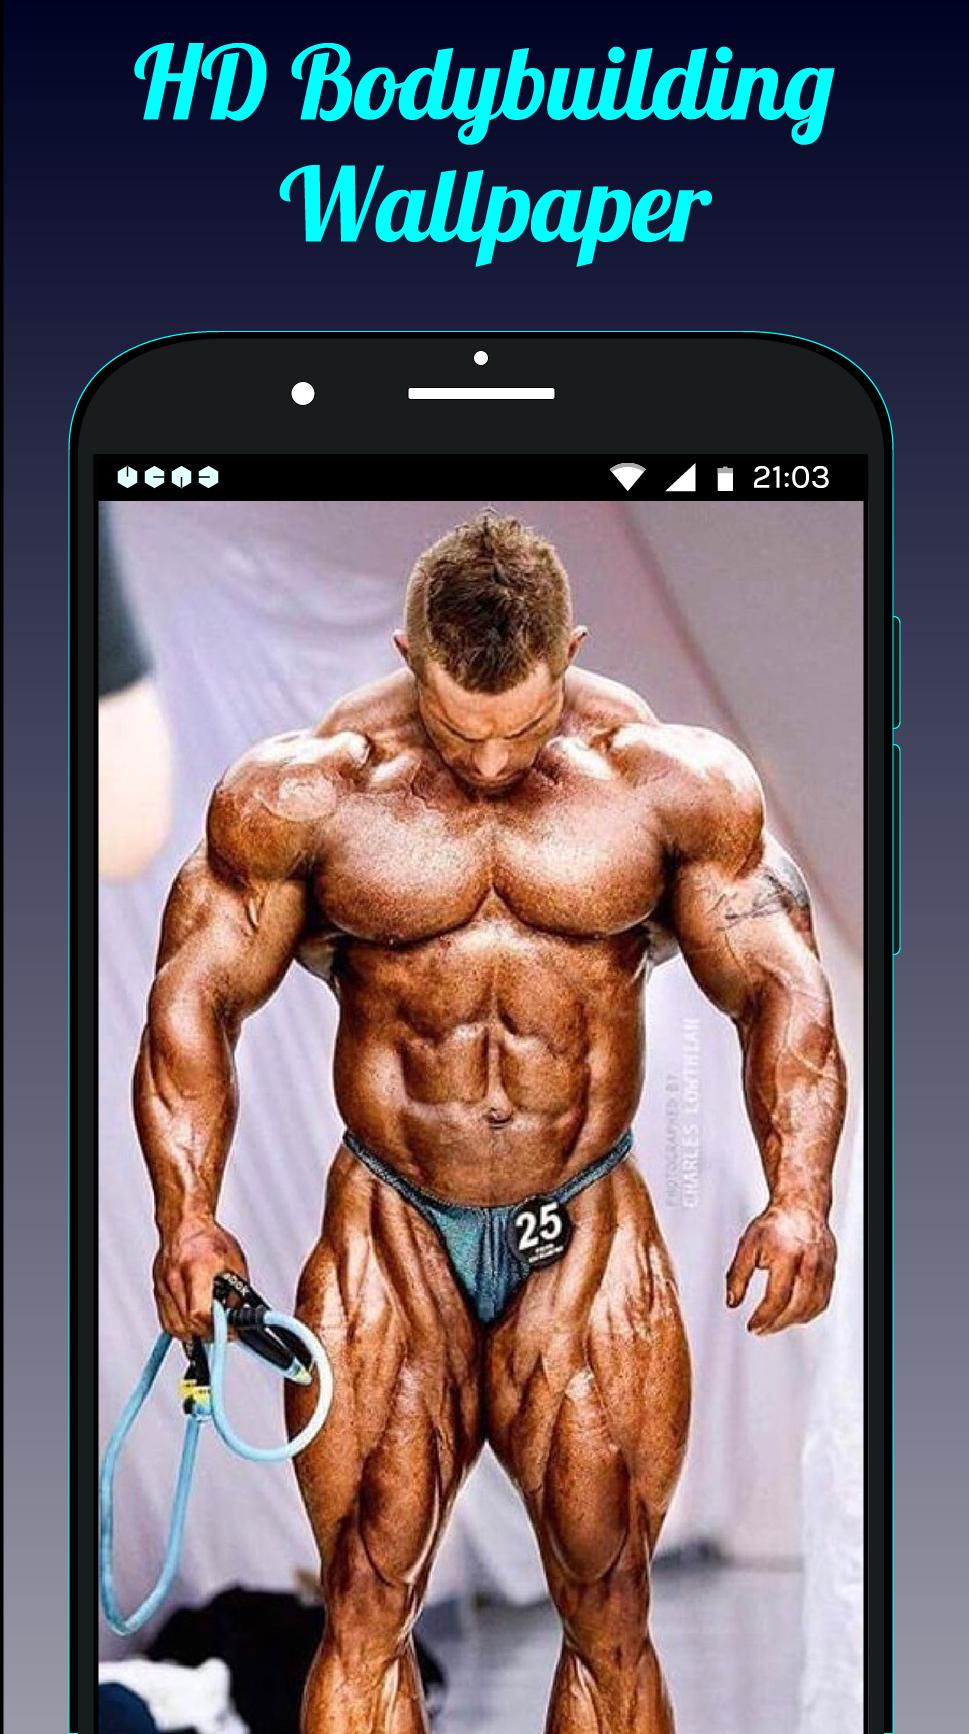 Hd Bodybuilding Wallpaper 2018 For Android Apk Download